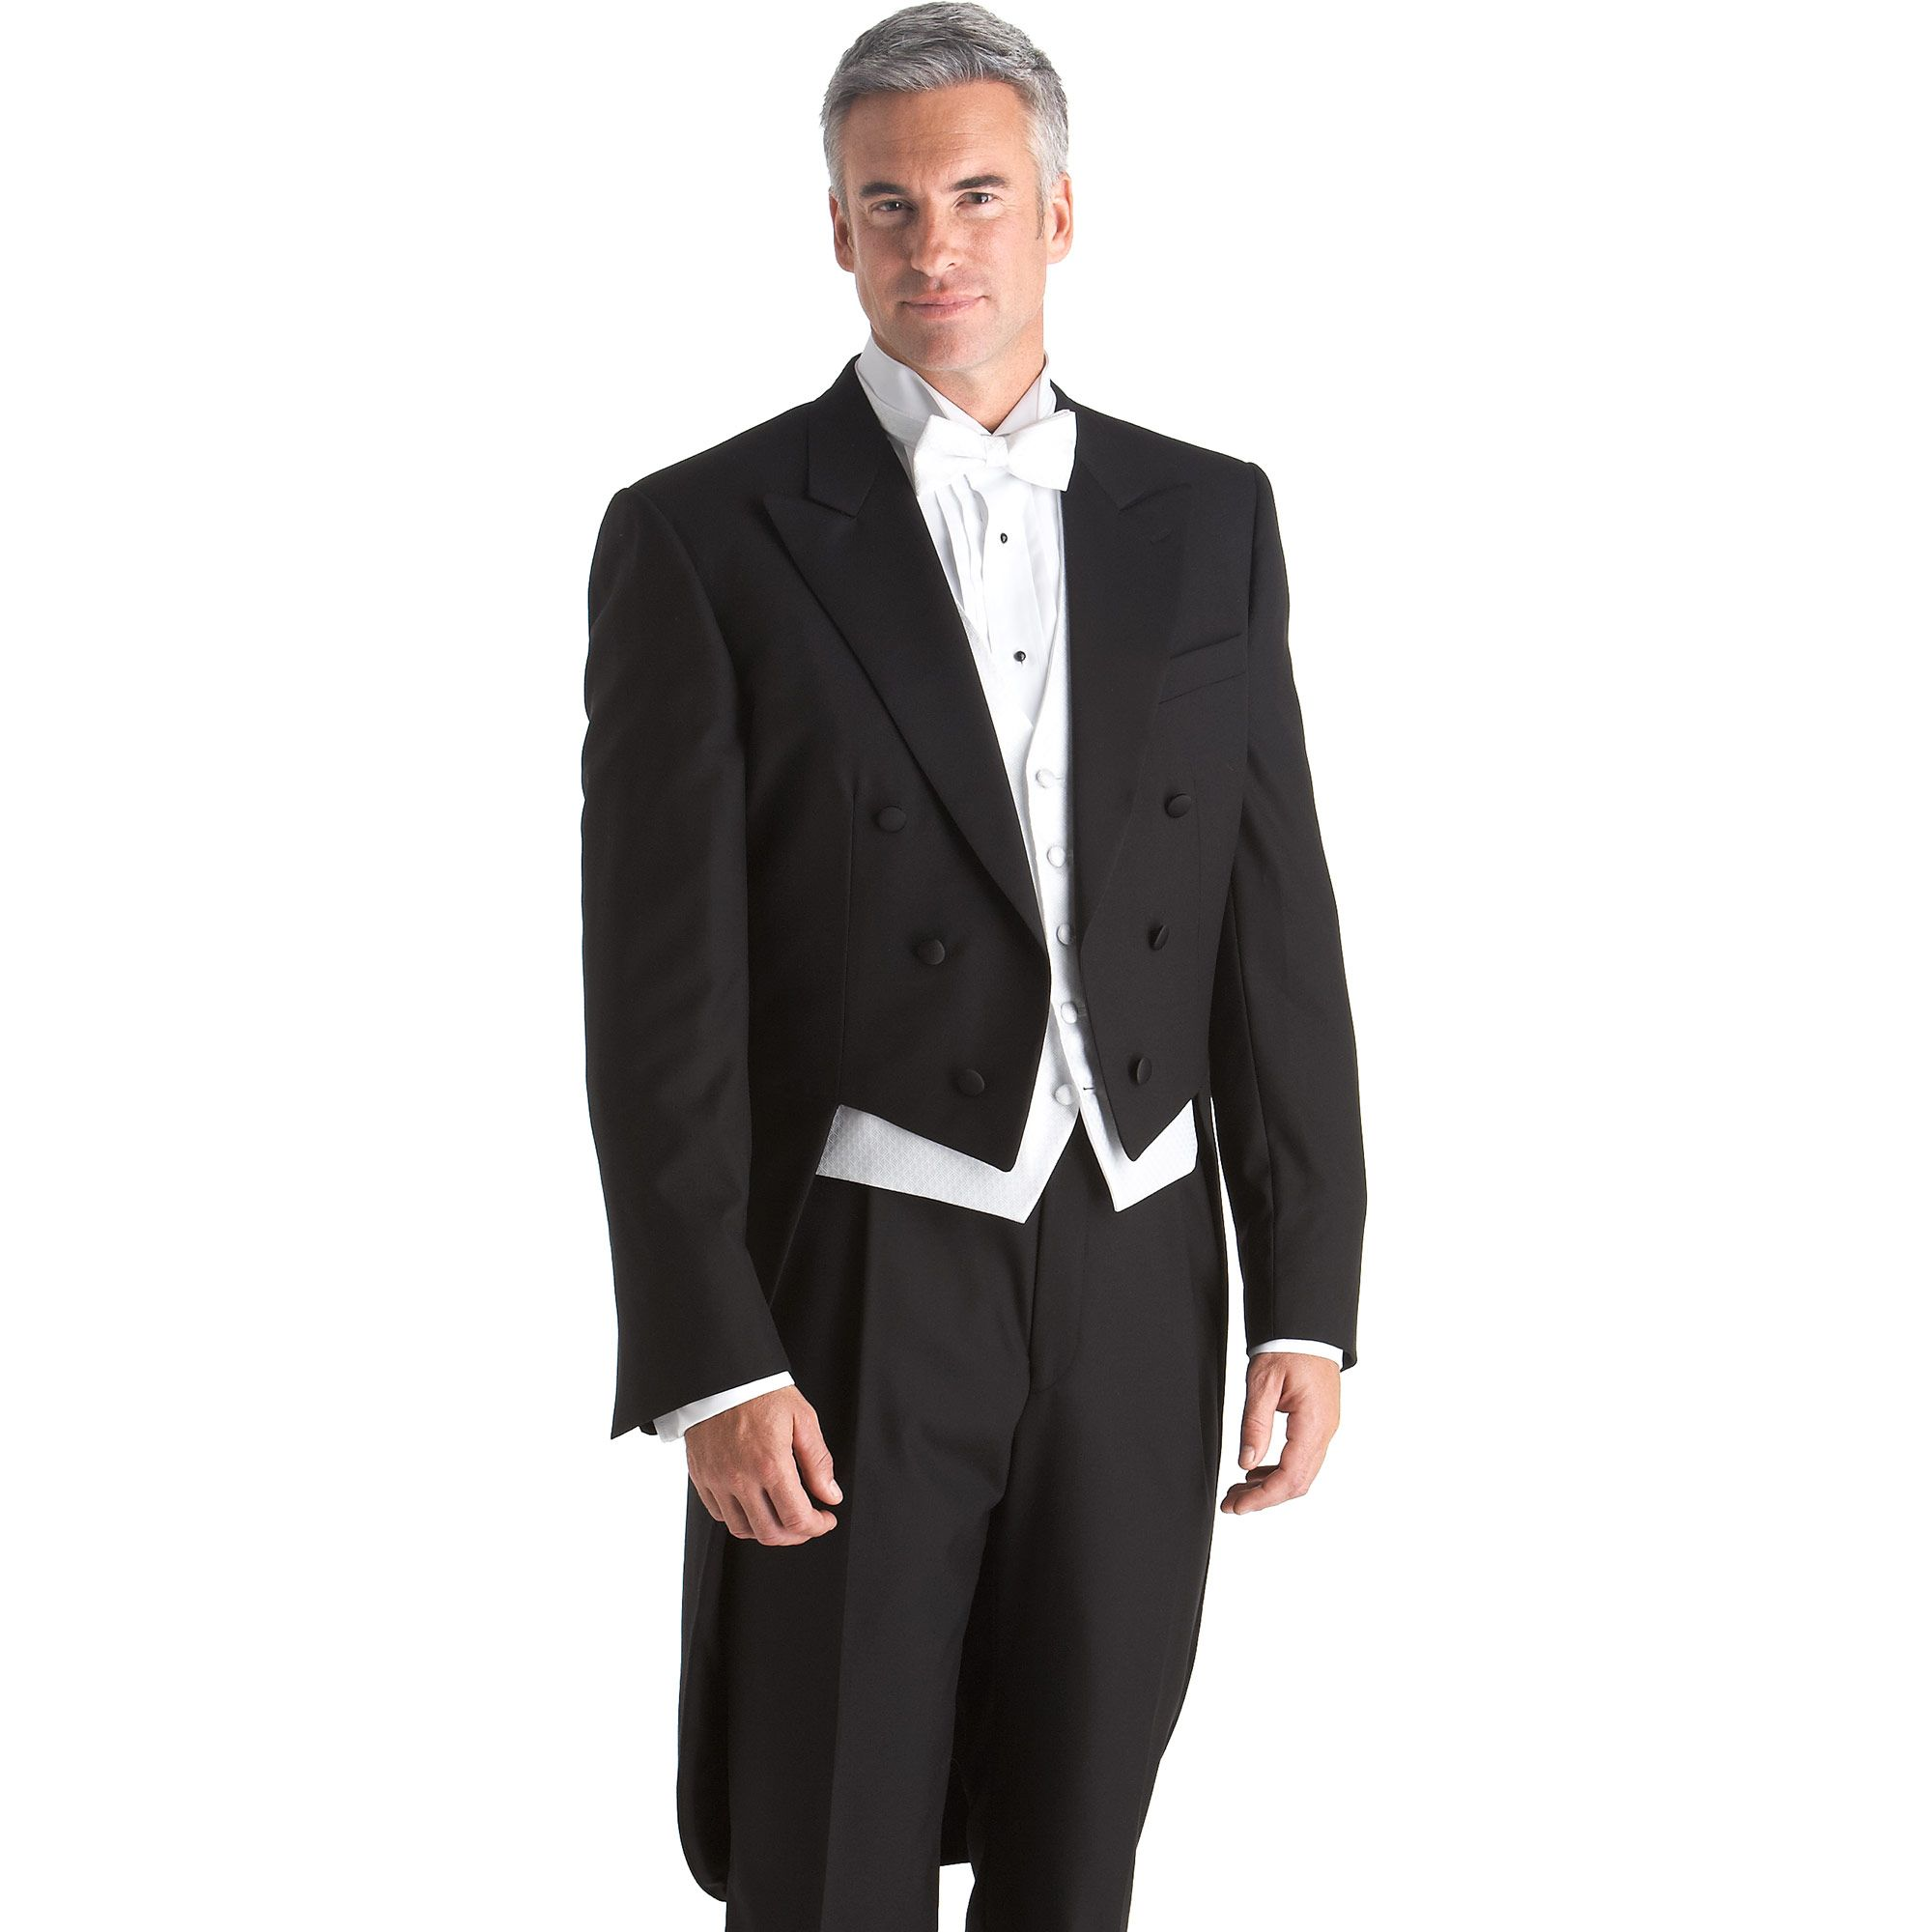 Tail Tuxedo By AHF Design In Black Or